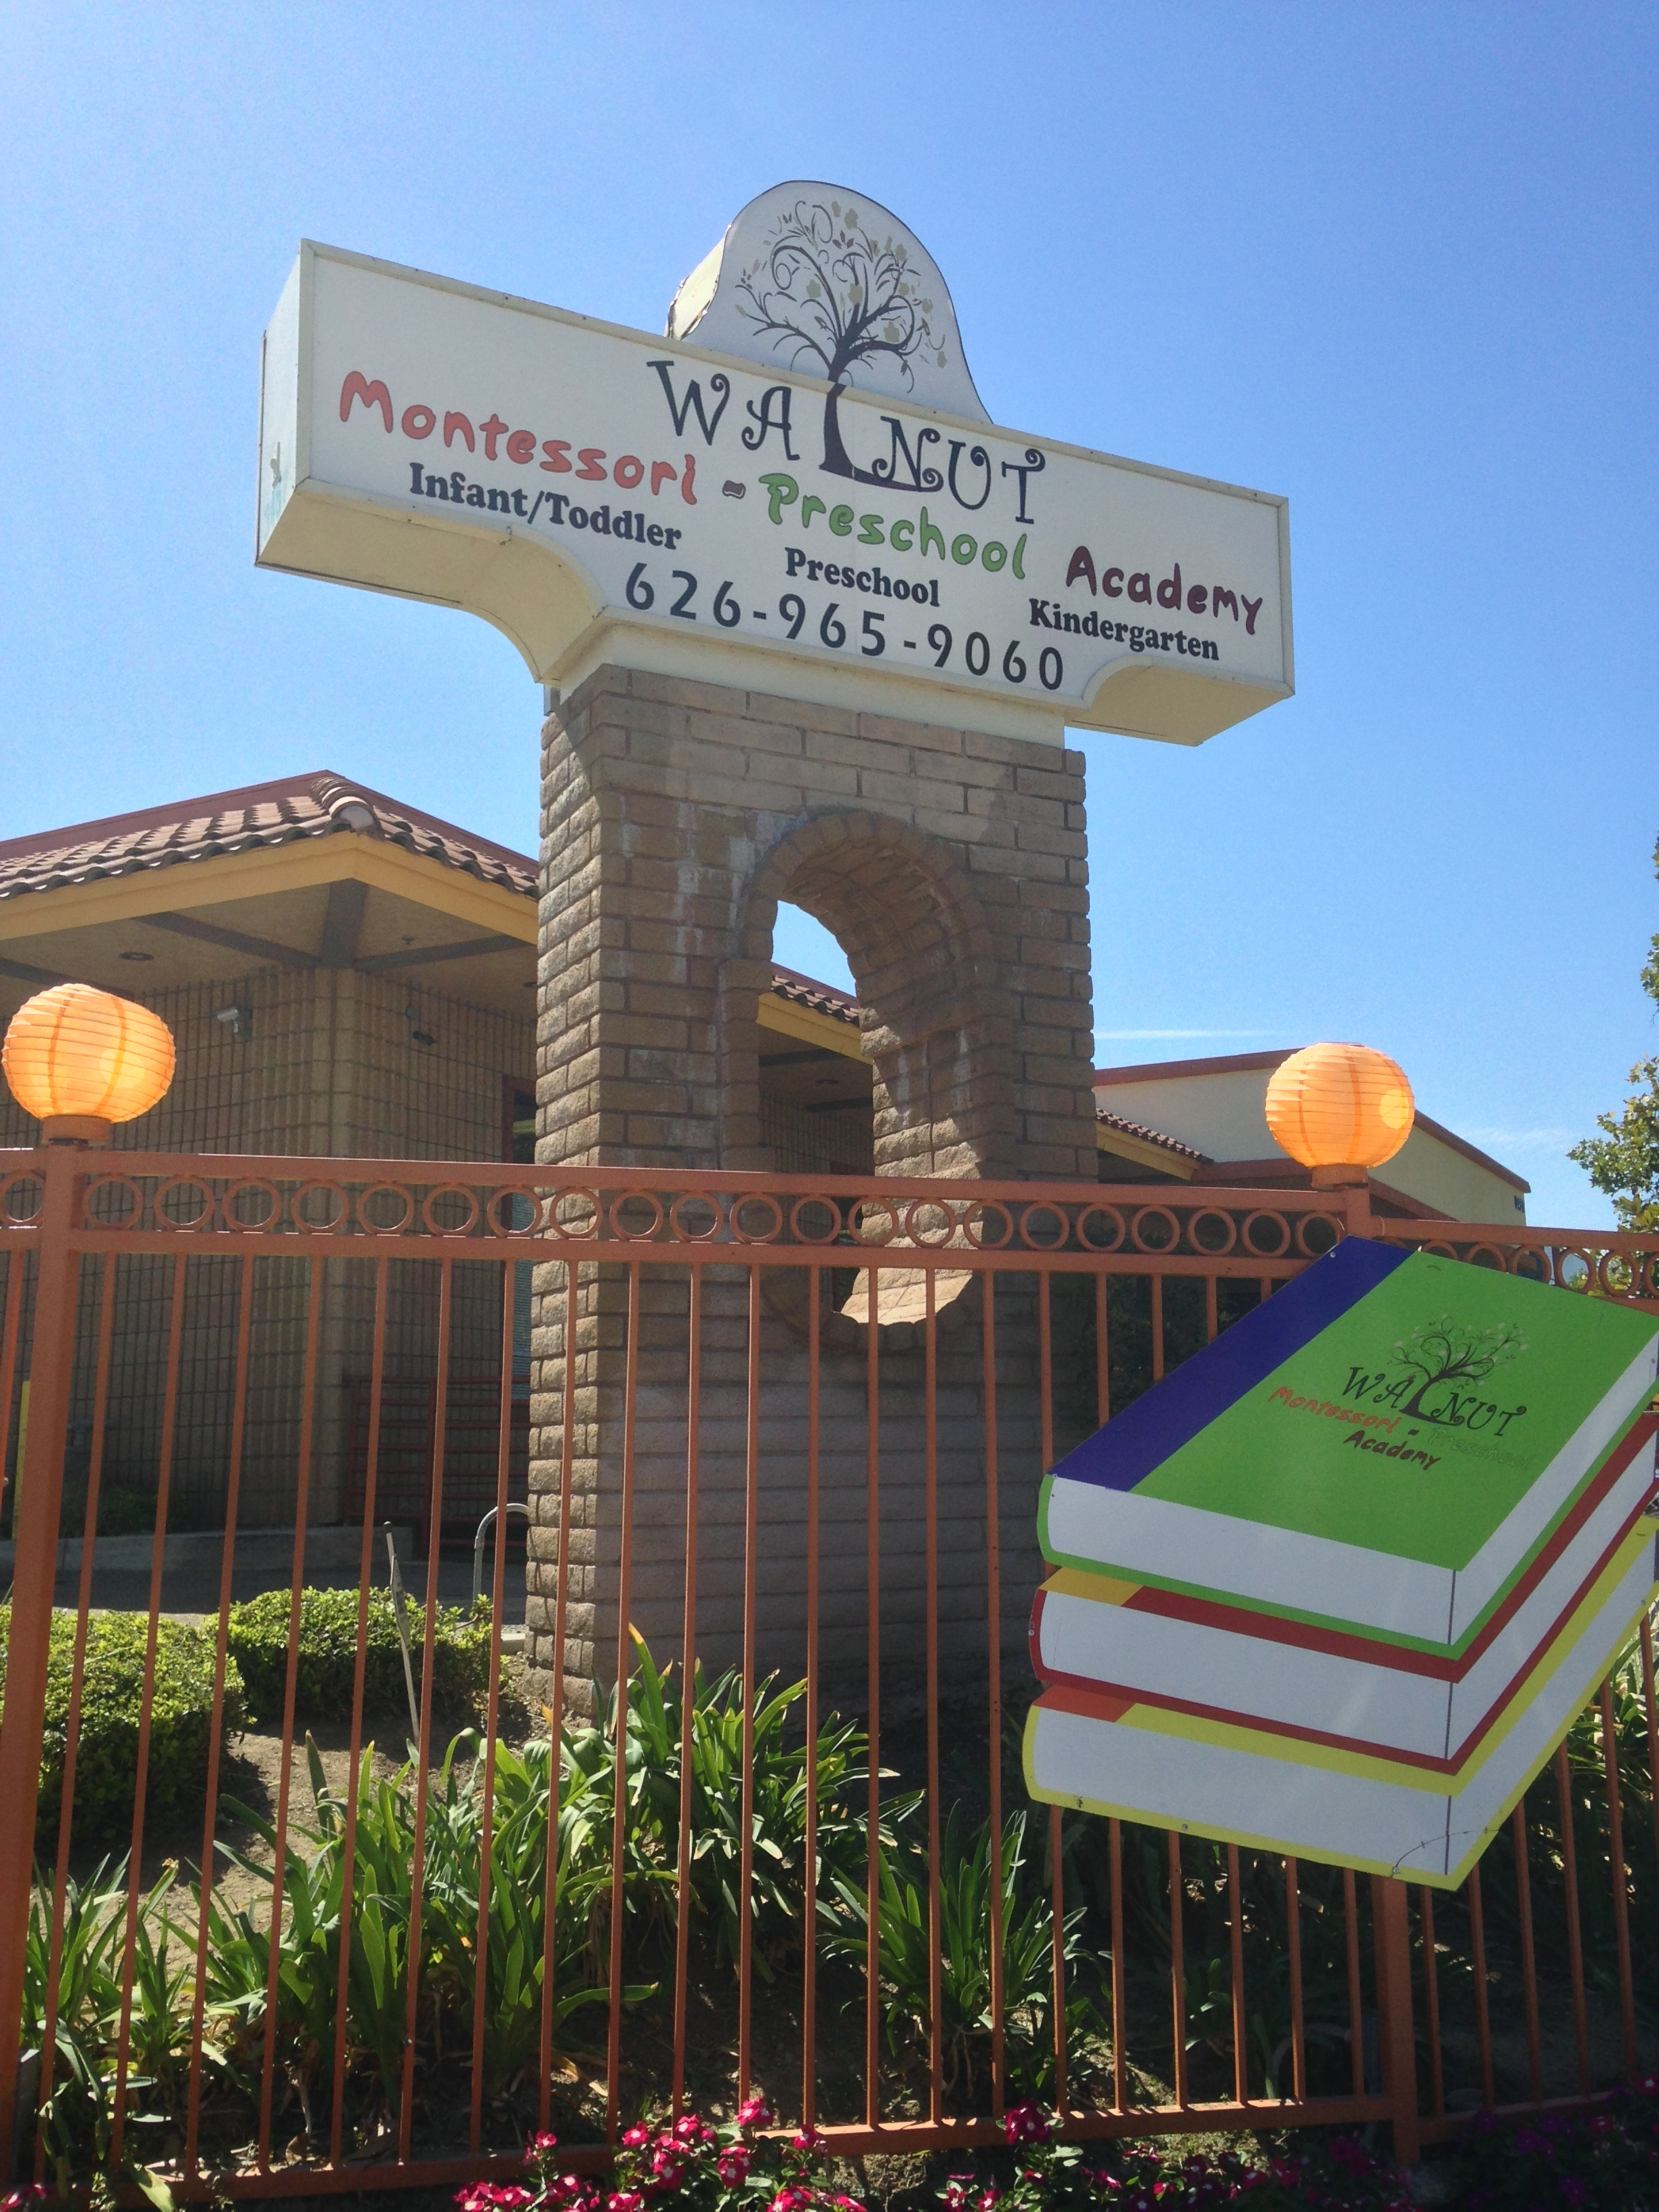 Walnut Montessori Preschool Academy Coupons Near Me In West Covina 8coupons